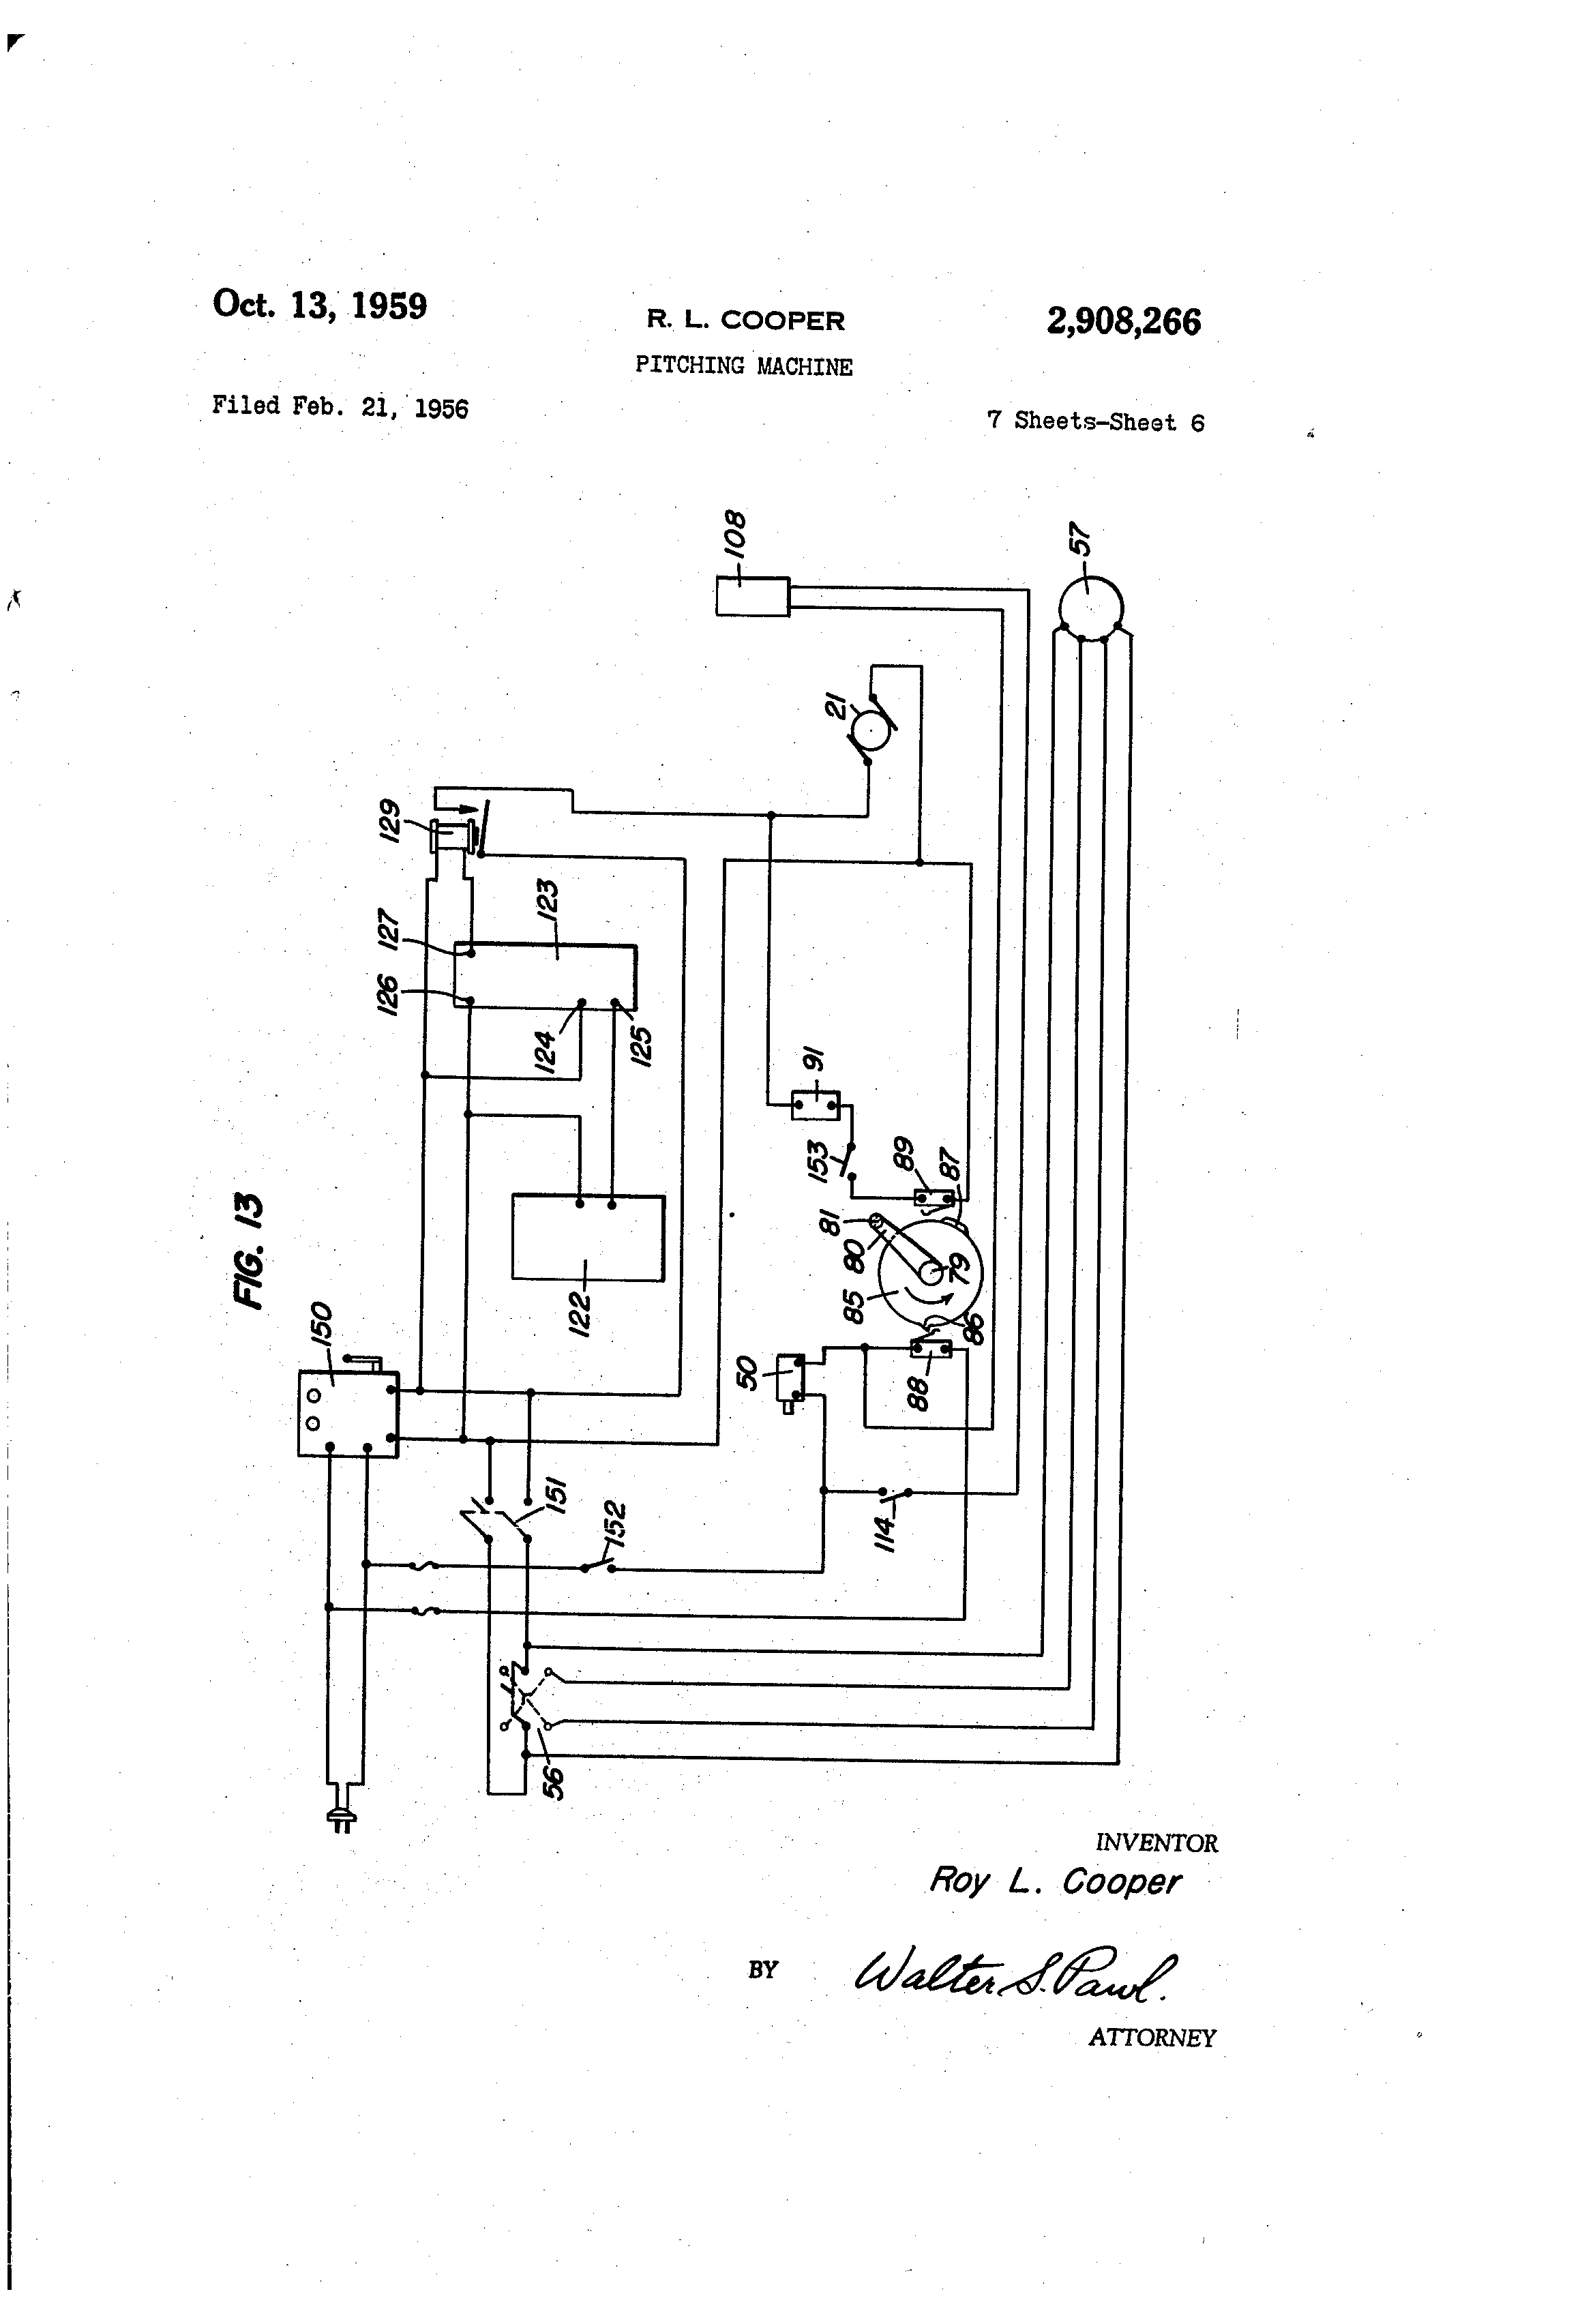 Iron Mike Pitching Machine Wiring Diagram : 41 Wiring